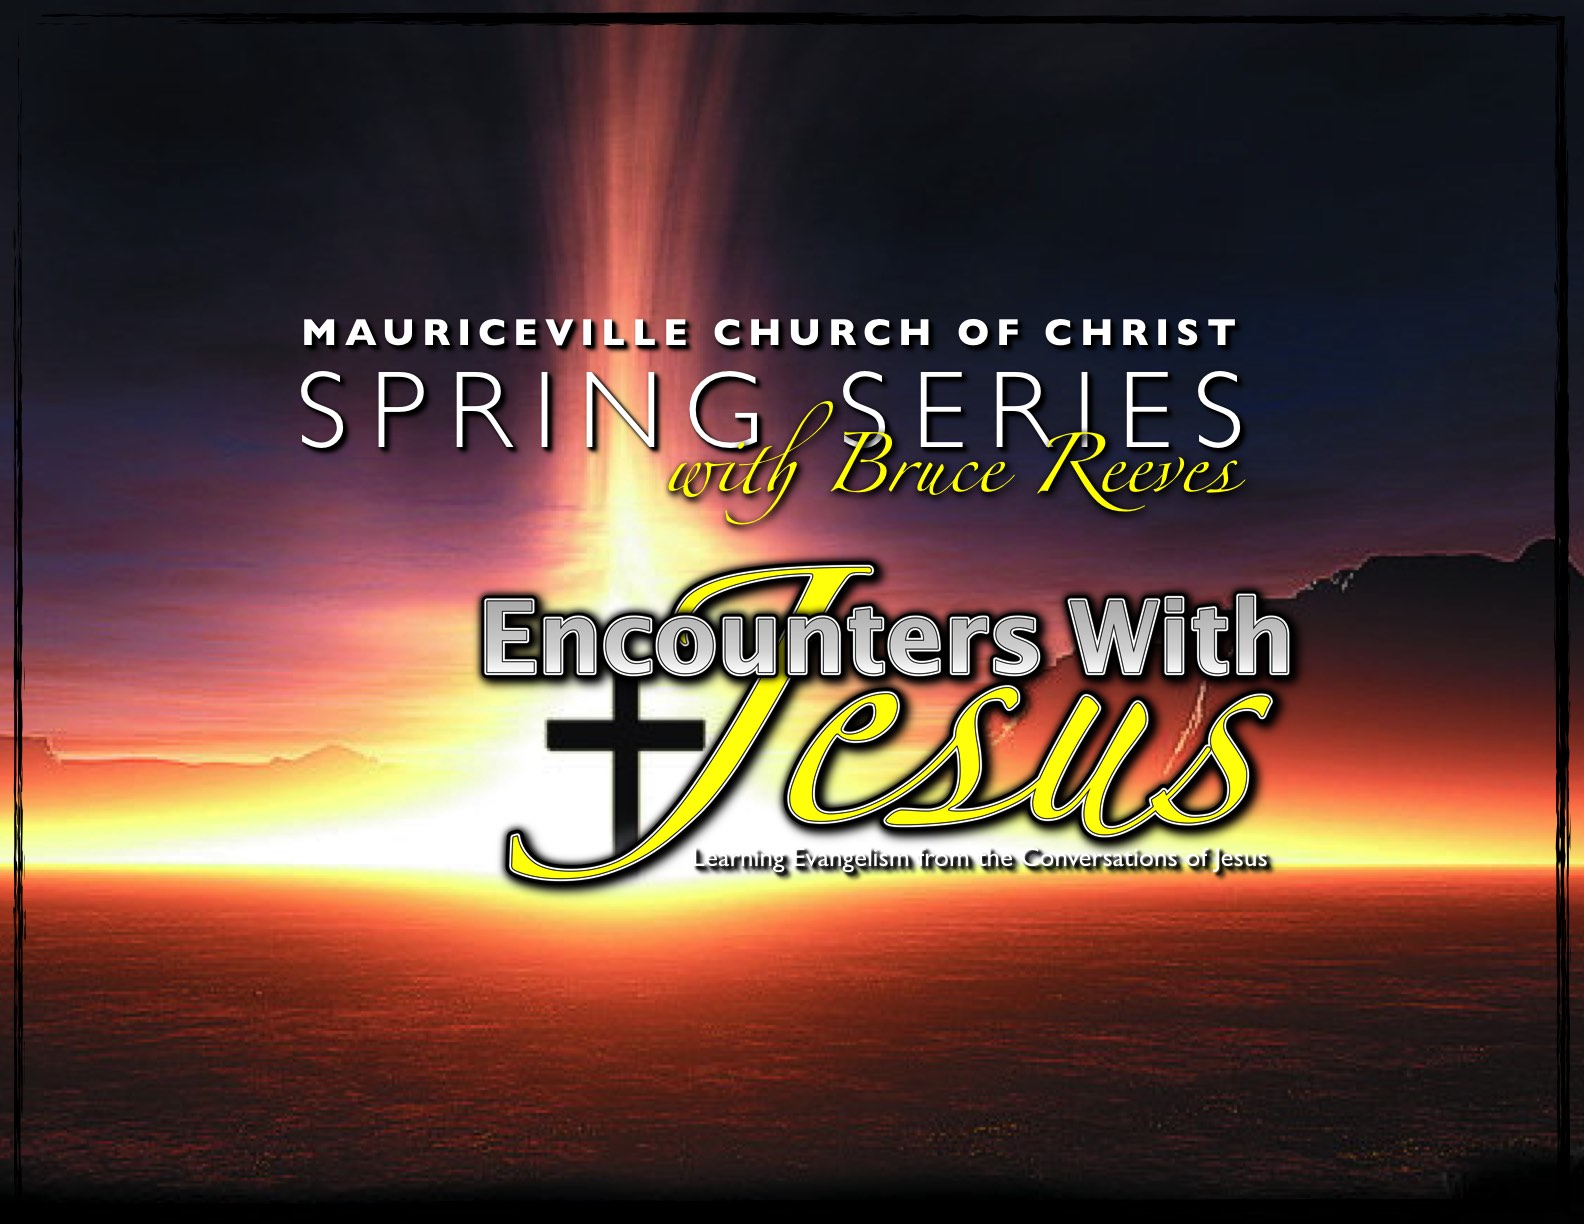 2015 Spring Meeting with Bruce Reeves